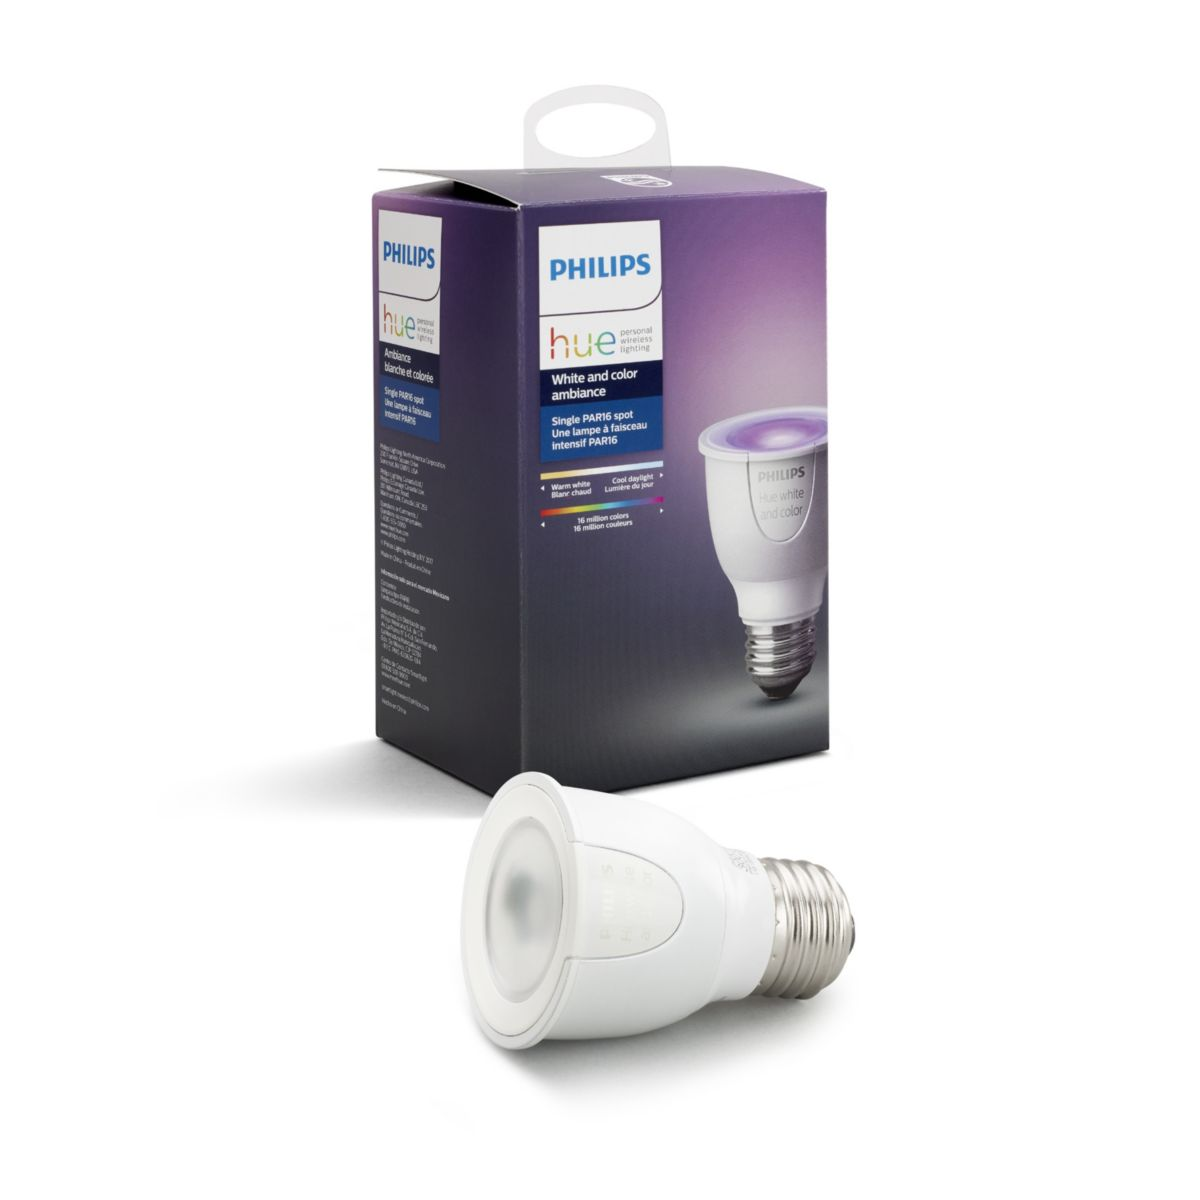 Philips Hue White and Color Ambiance PAR16 Single Bulb #456673